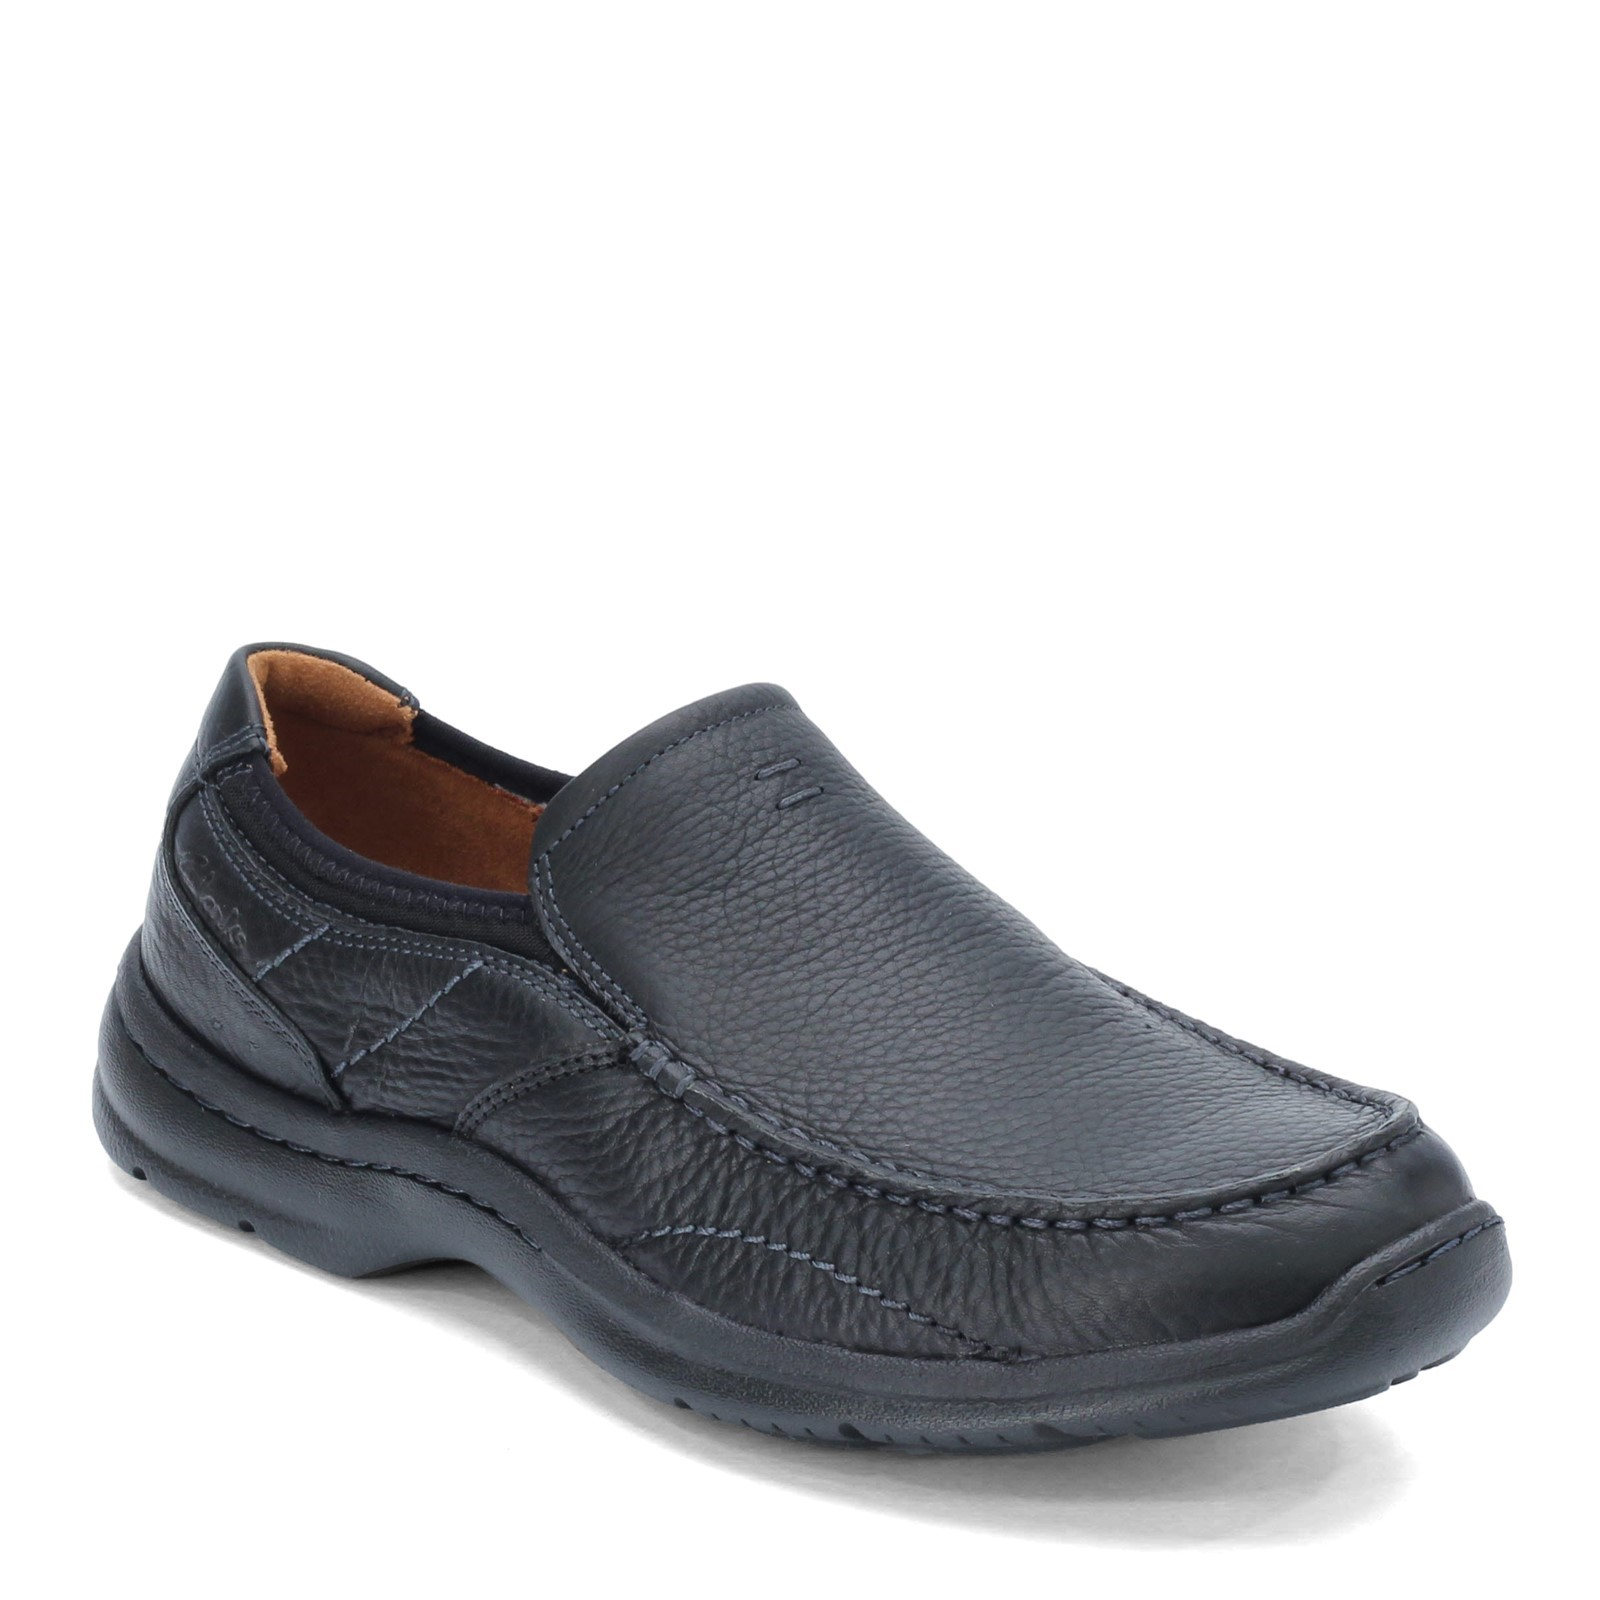 Men's Clarks, Niland Energy Loafer